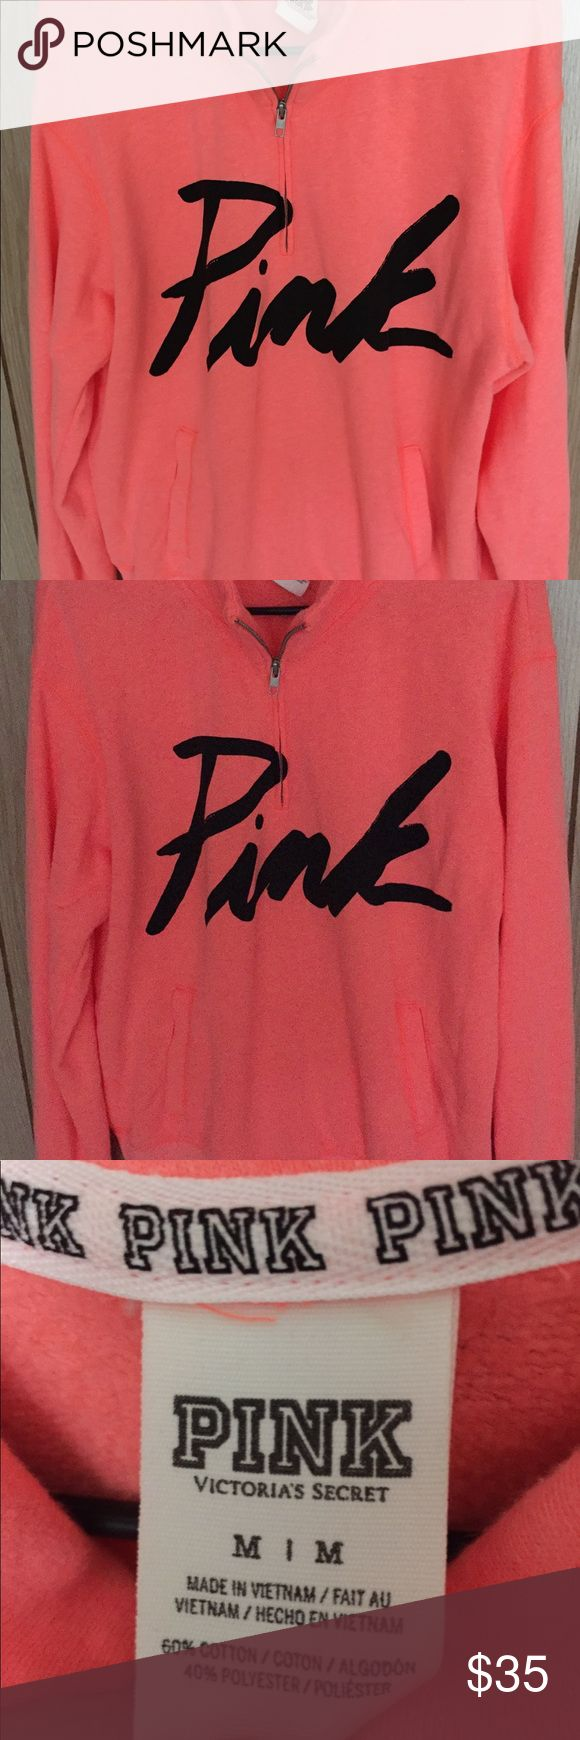 PINK Victoria secret half zip sweater Pink Victoria Secret half zip sweater  Hot pink with black lettering  Size M  In good condition/looks new  Worn once Victoria's Secret Sweaters